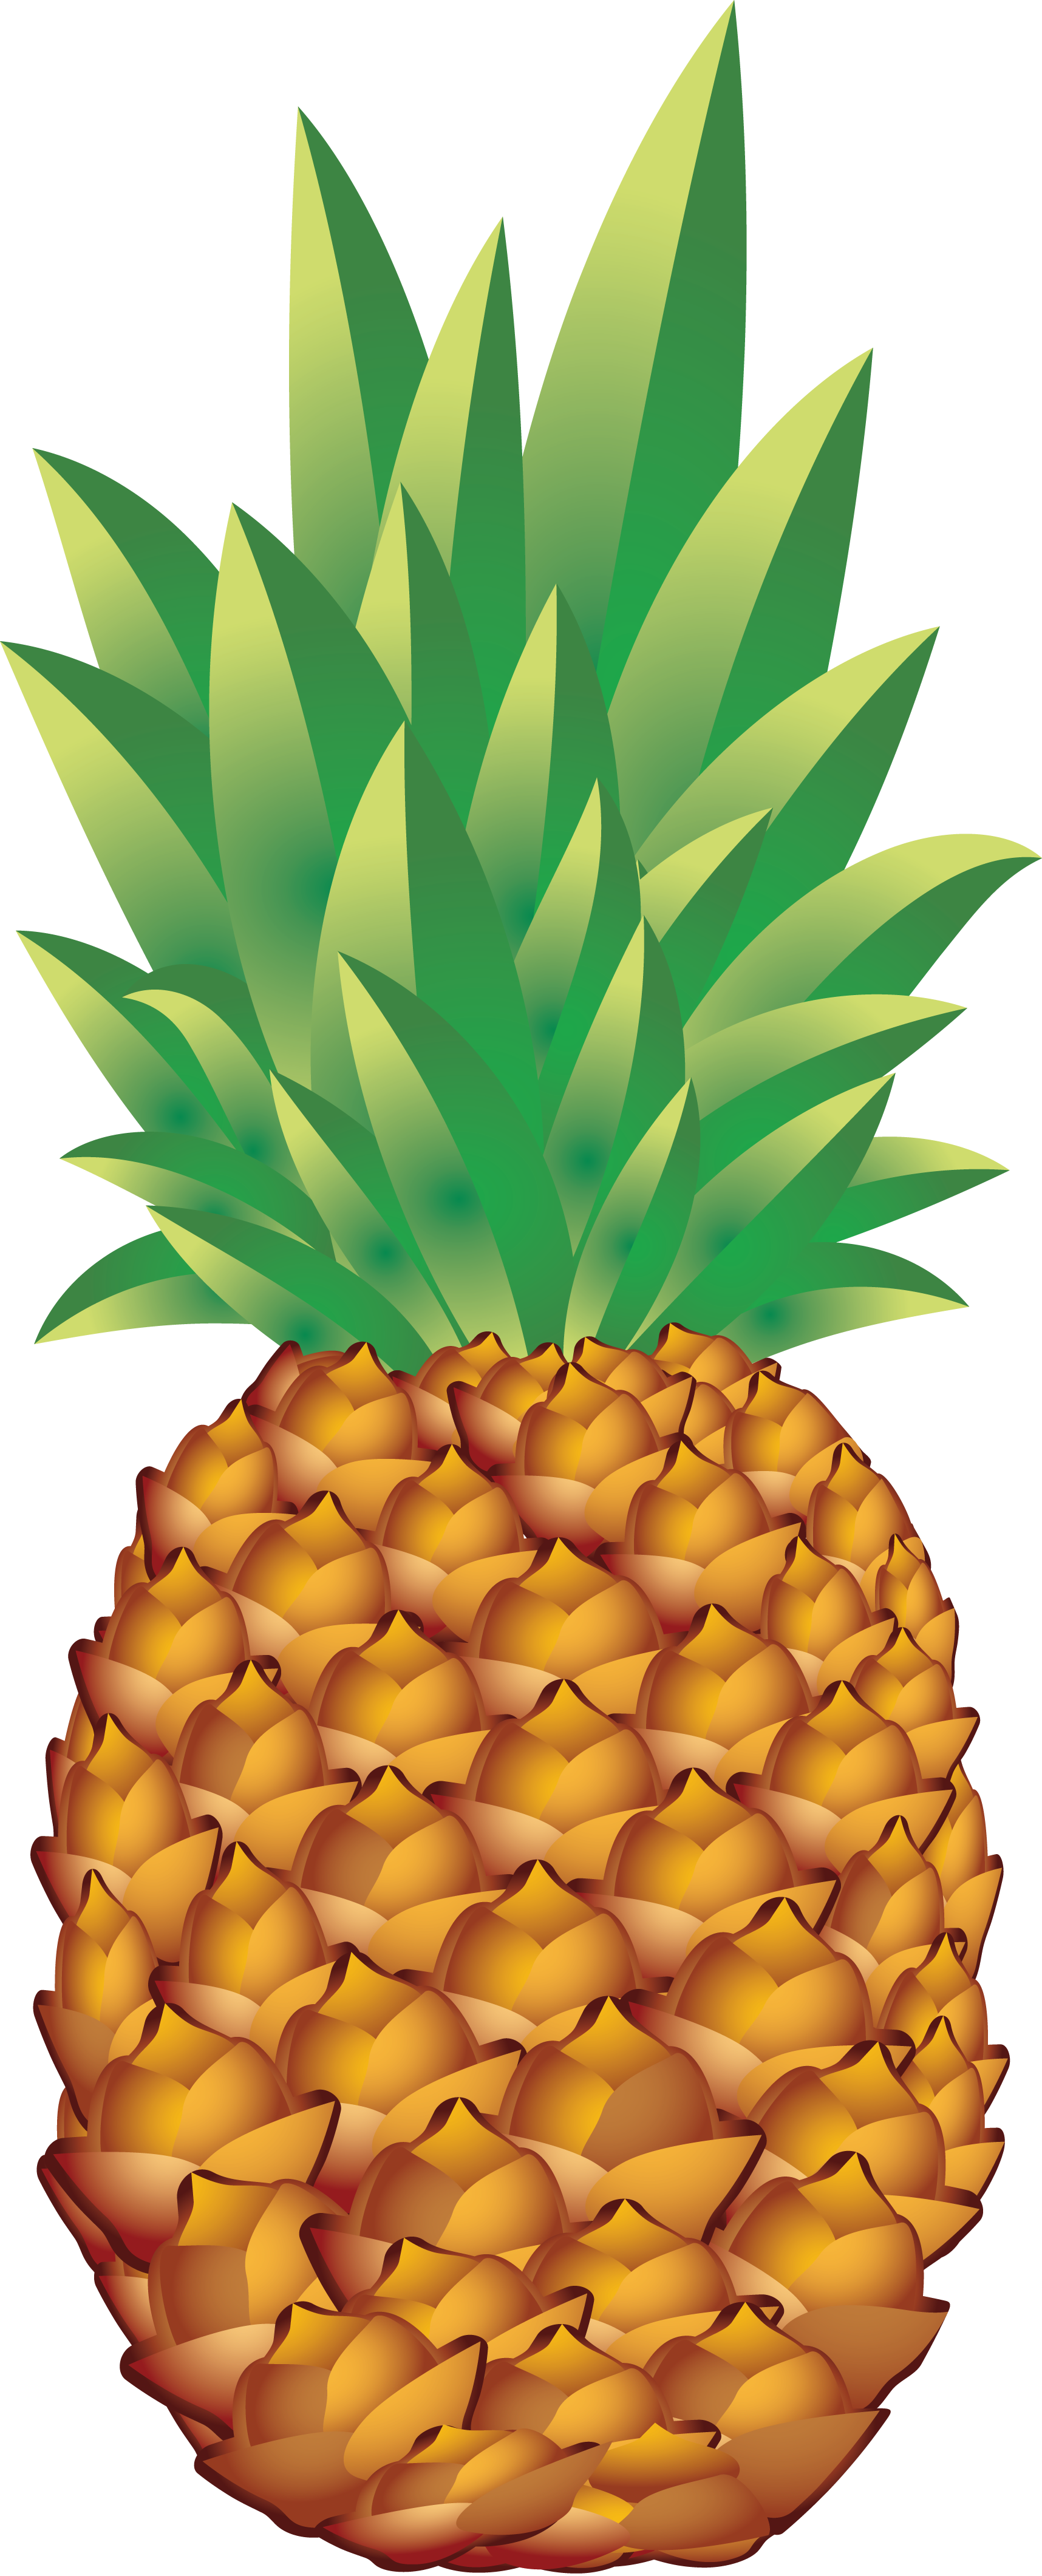 Tropical fruit png. Pineapple images free pictures